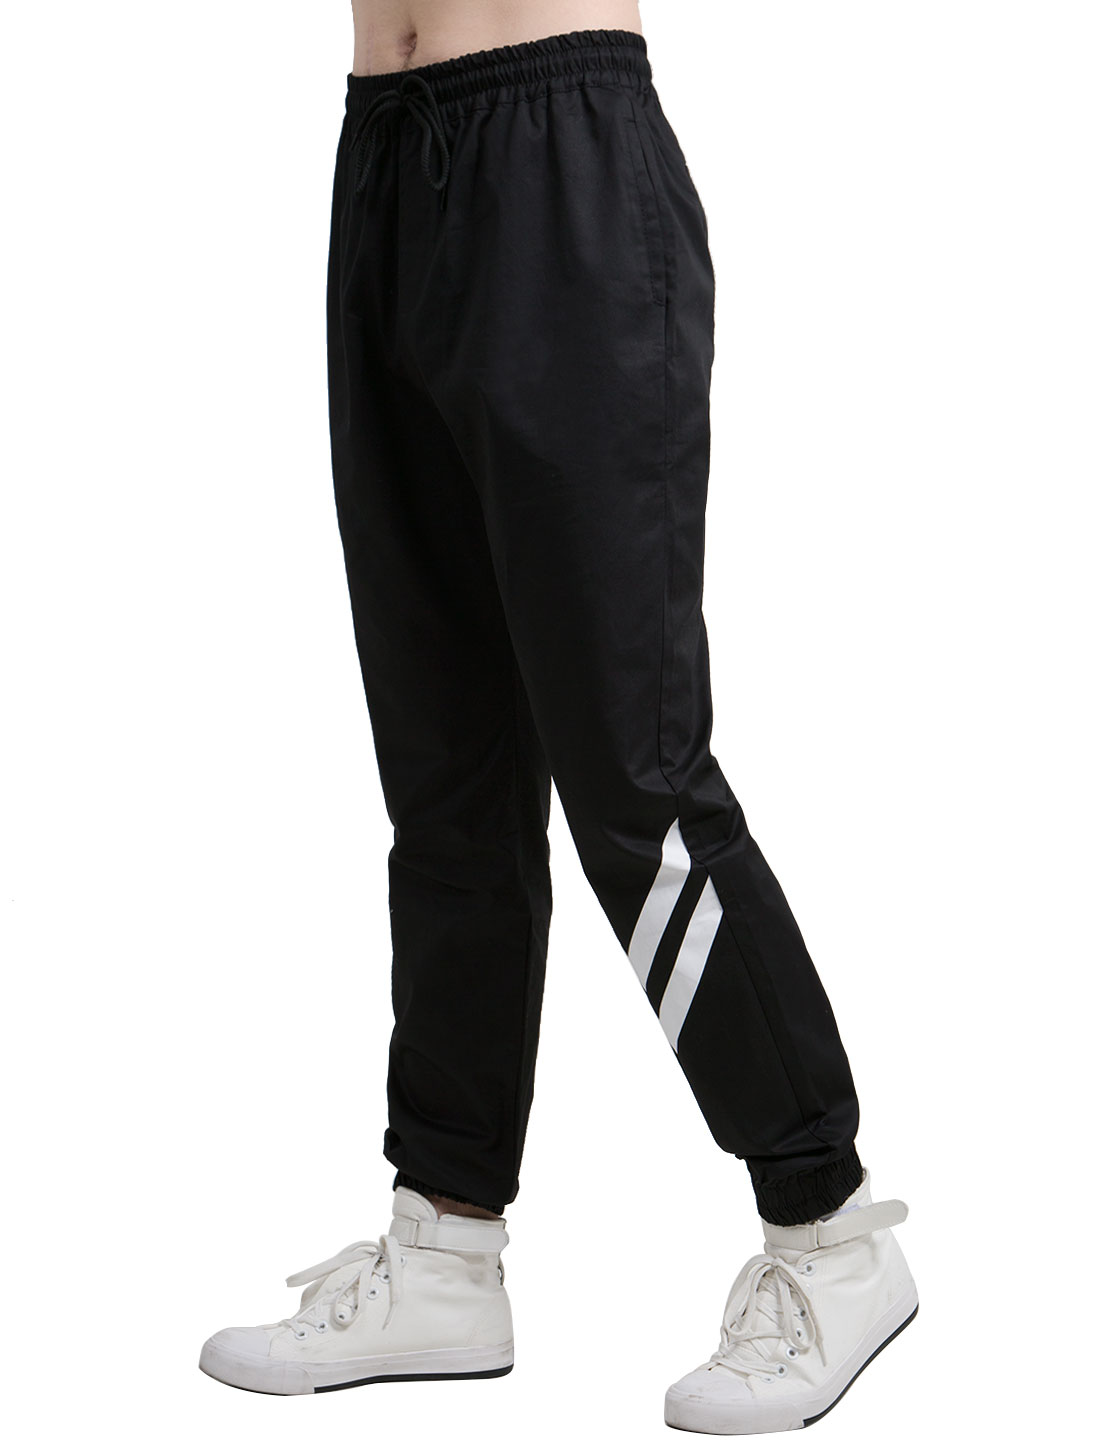 Men Arrows Pattern Drawstring Stretch Elastic Waist Sweatpants Black W34